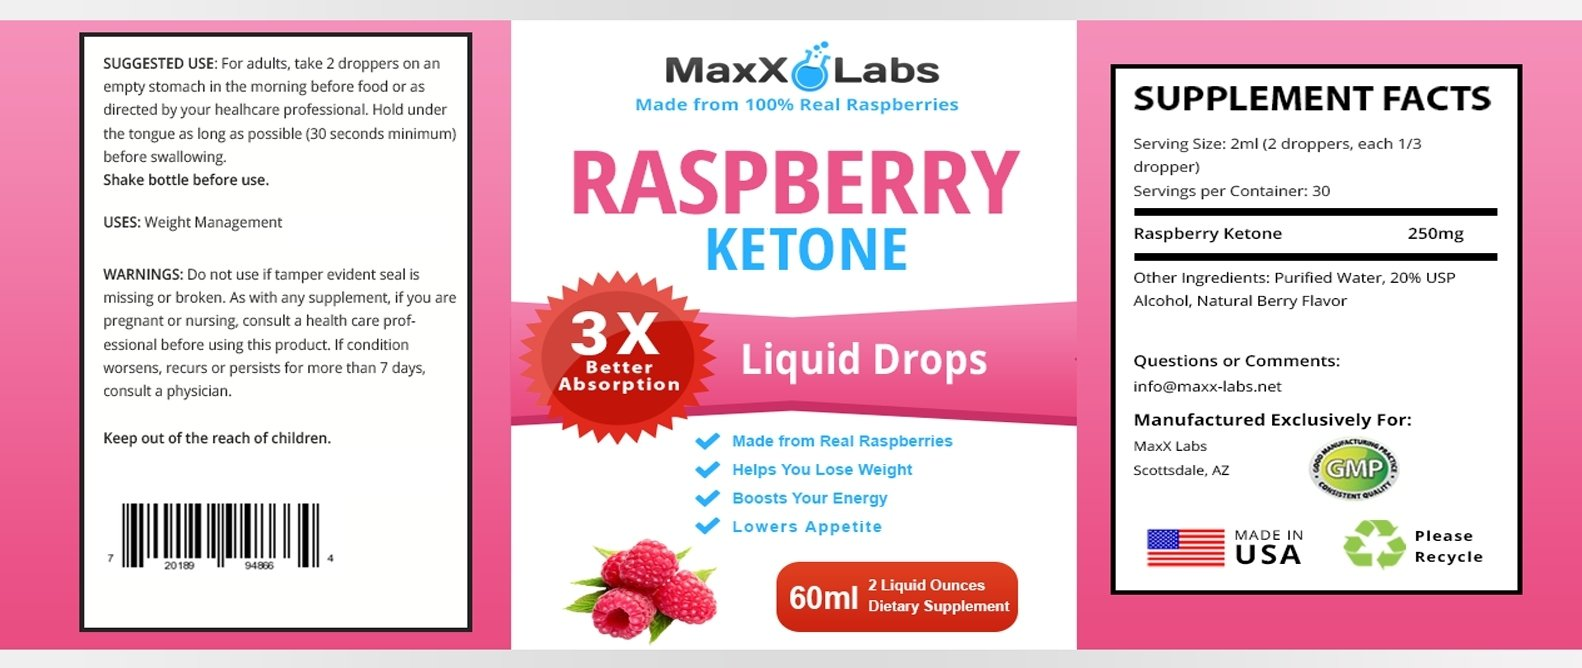 100% PURE Raspberry Ketone Drops - LOSE WEIGHT OR YOUR MONEY BACK - Top Choice of Dieters Wanting the Strongest Raspberry Ketones Liquid with 250mg Extracted from - ACTUAL Raspberry Fruit, 2oz Bottle by MaxX Labs (Image #2)